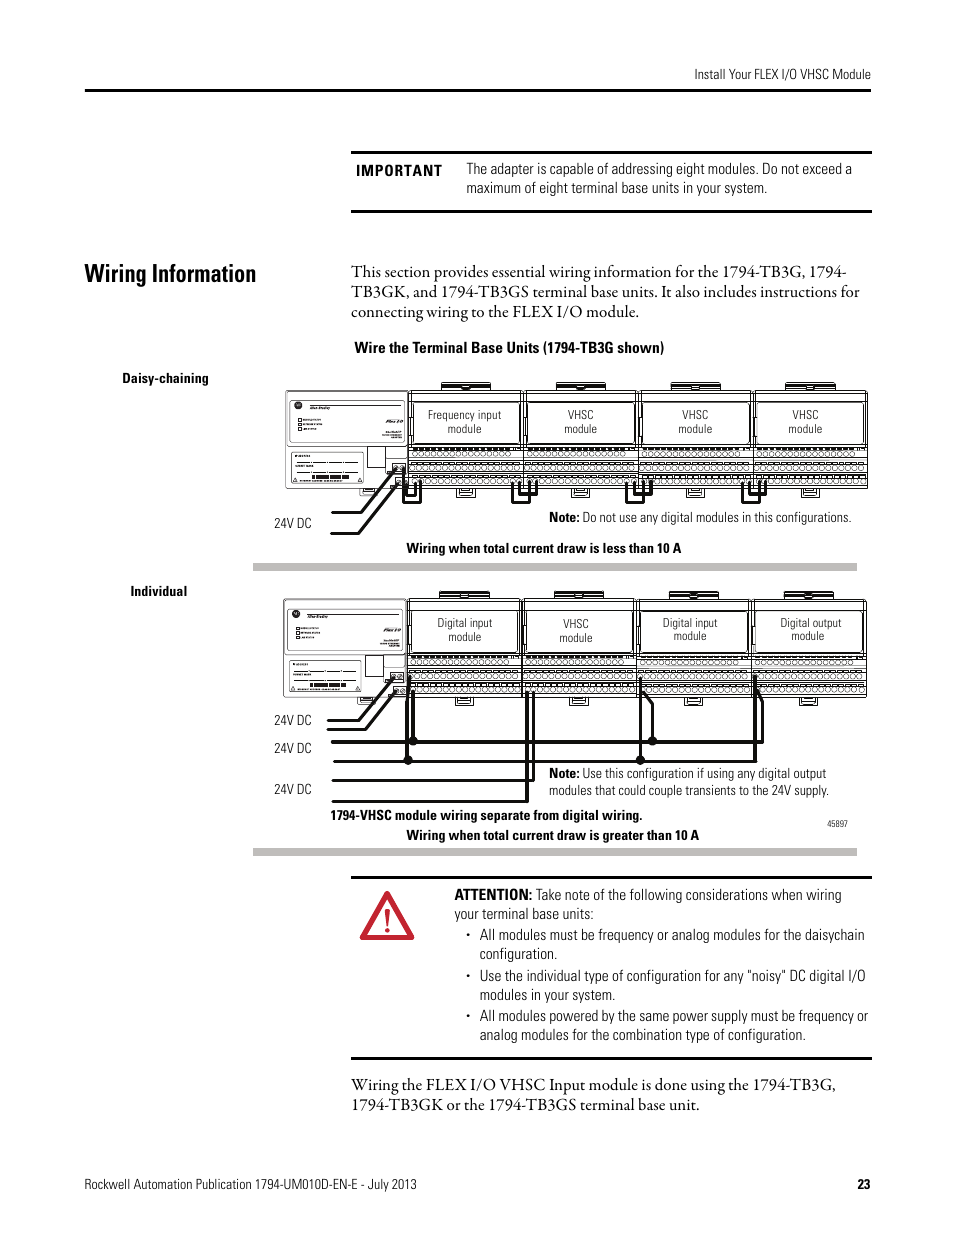 Wiring information, Wiring information on | Rockwell Automation 1794-VHSC  1794 FLEX I/O Very High Speed Counter Module User Manual User Manual | Page  31 / ...